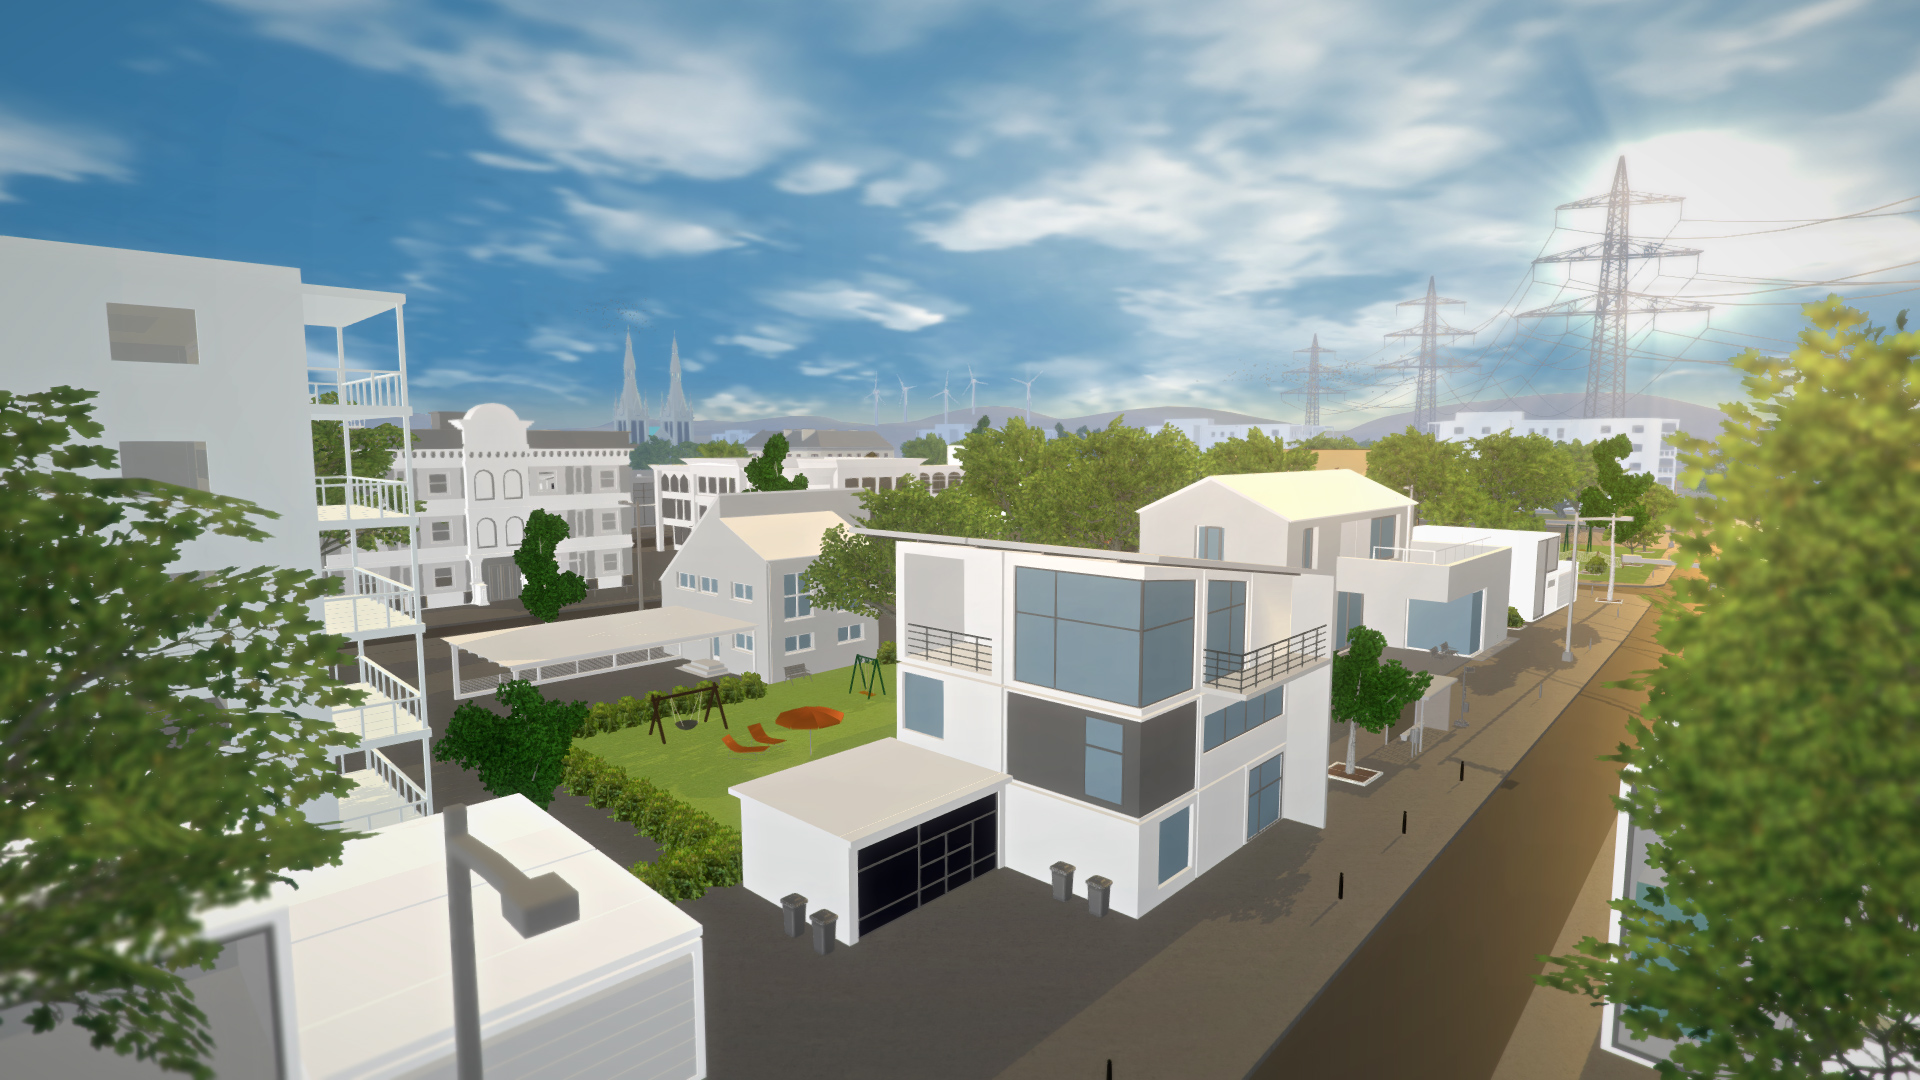 vaillant city unity stadt rendering